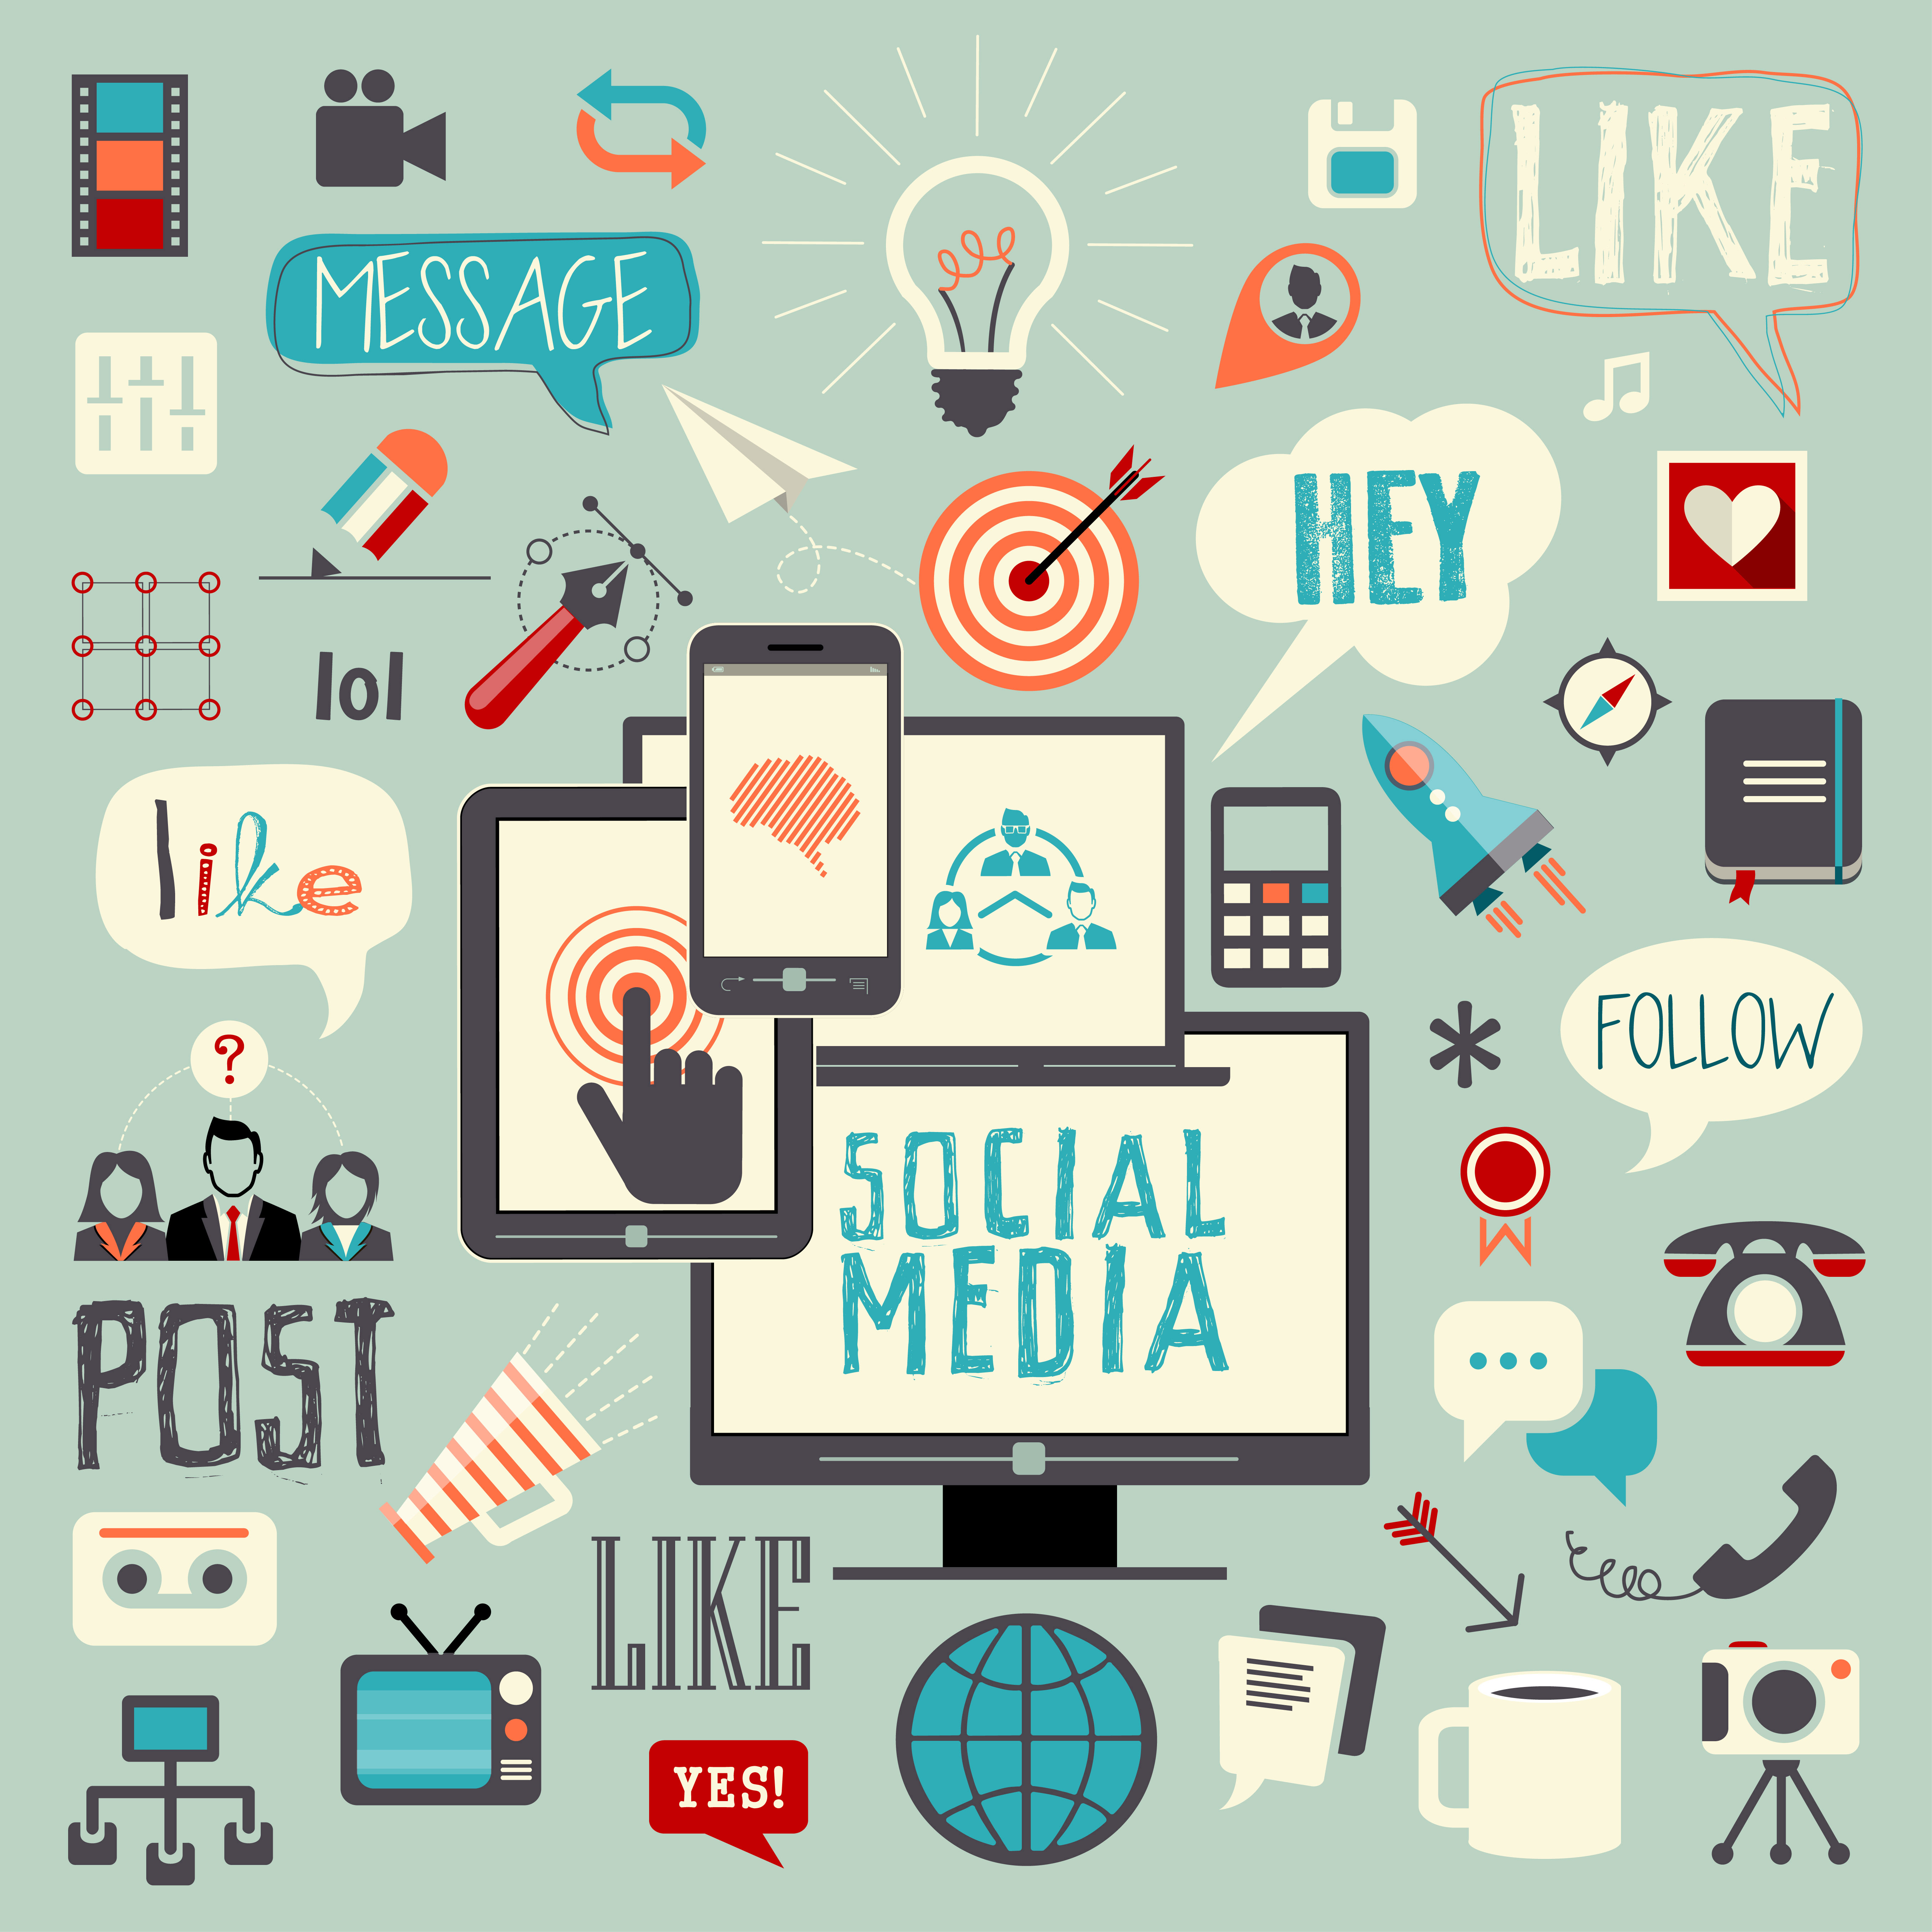 Which Social Media Platform Generates the Most Return Visitors for Media Sites?